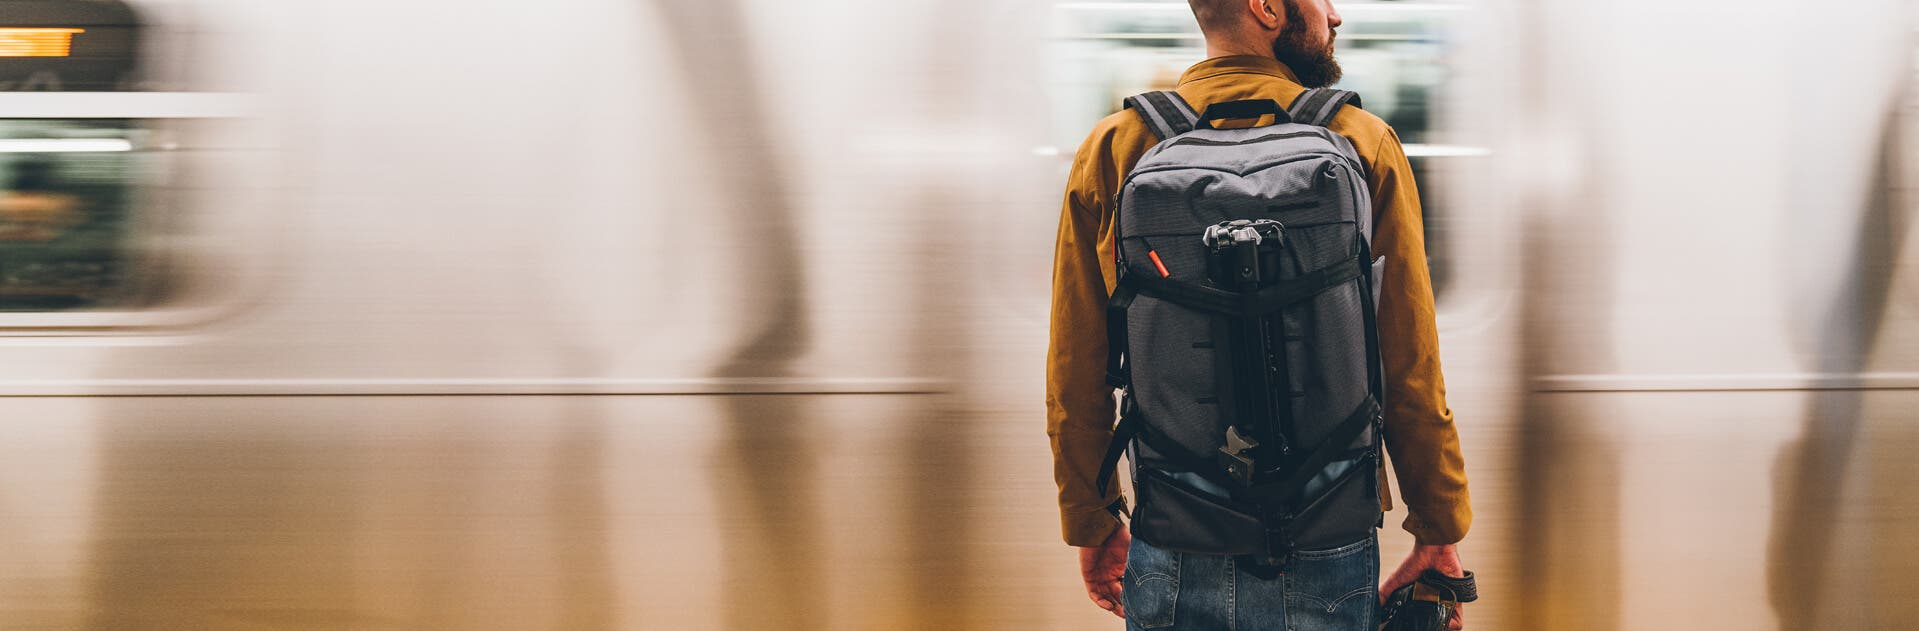 Manfrotto's New Manhattan Lineup of Bags Target the NYC Photographer